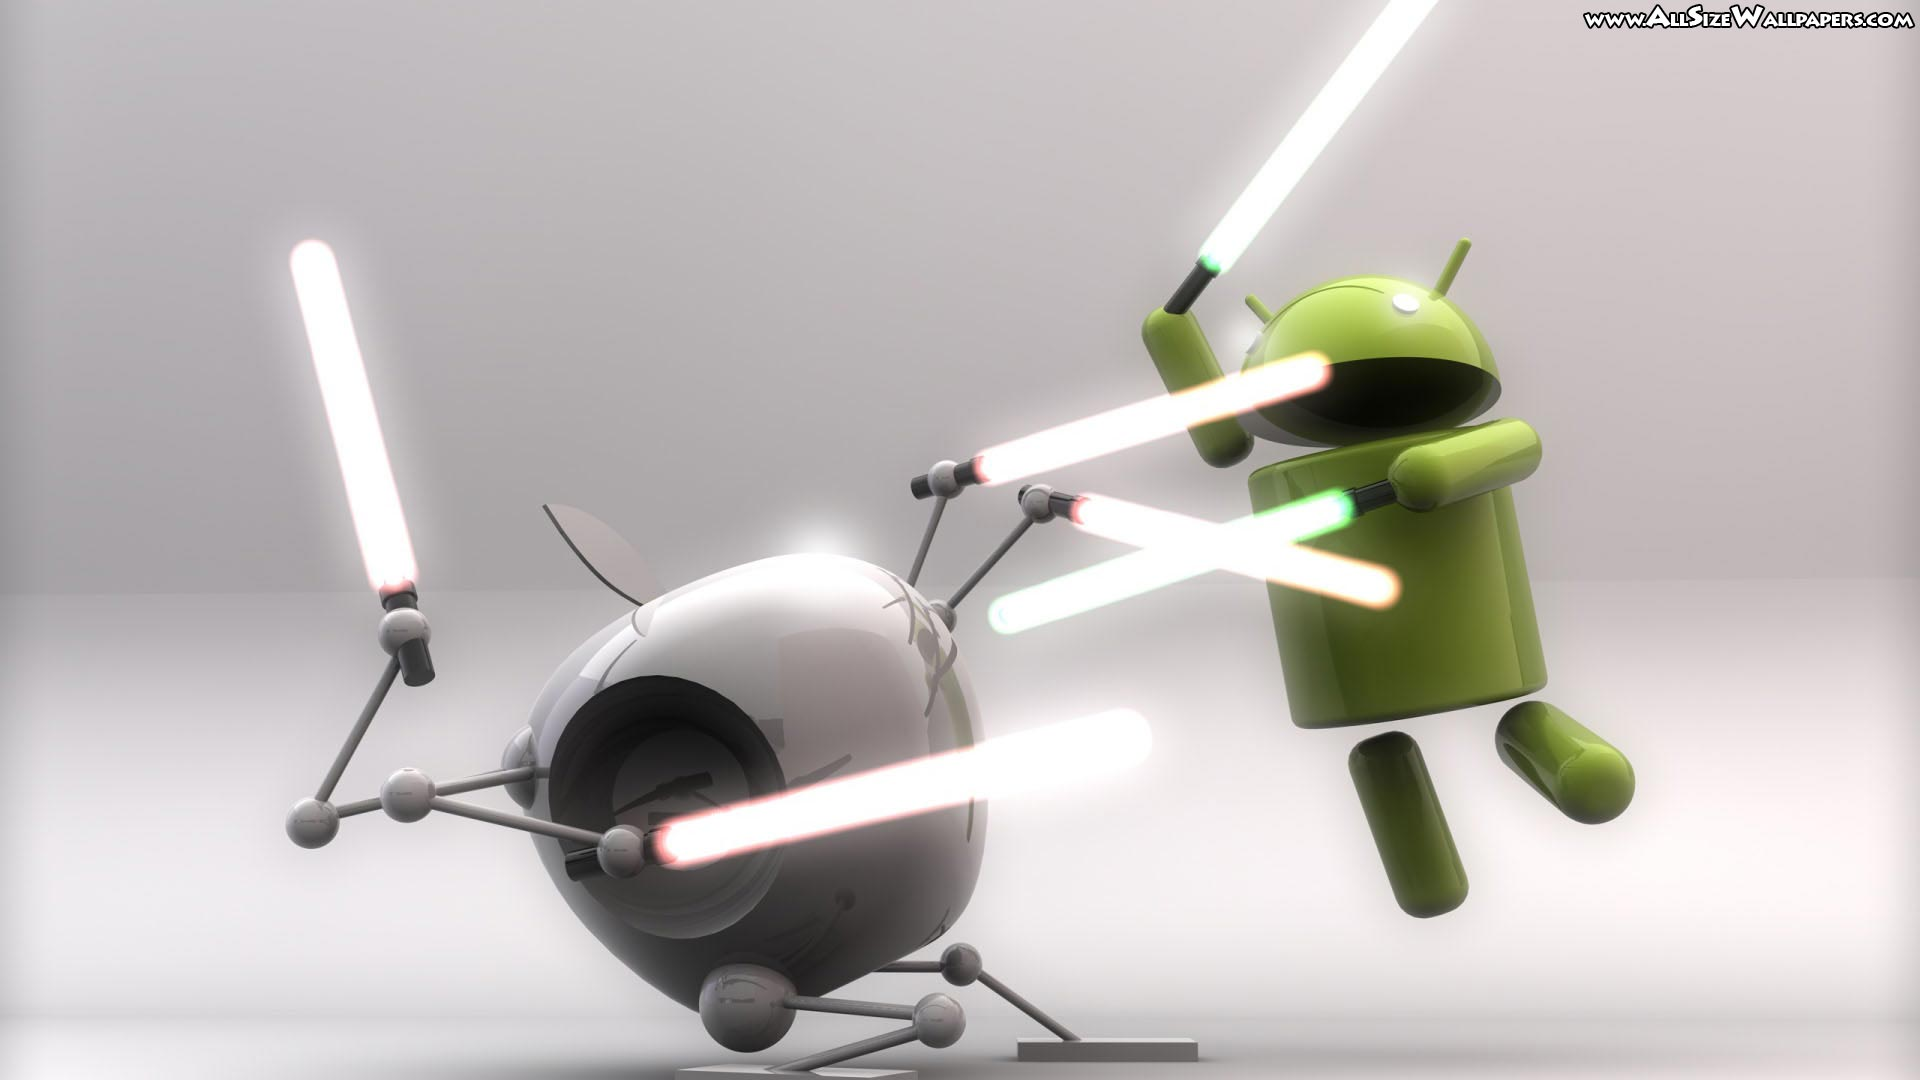 android-funny-wallpapers-1920x1080